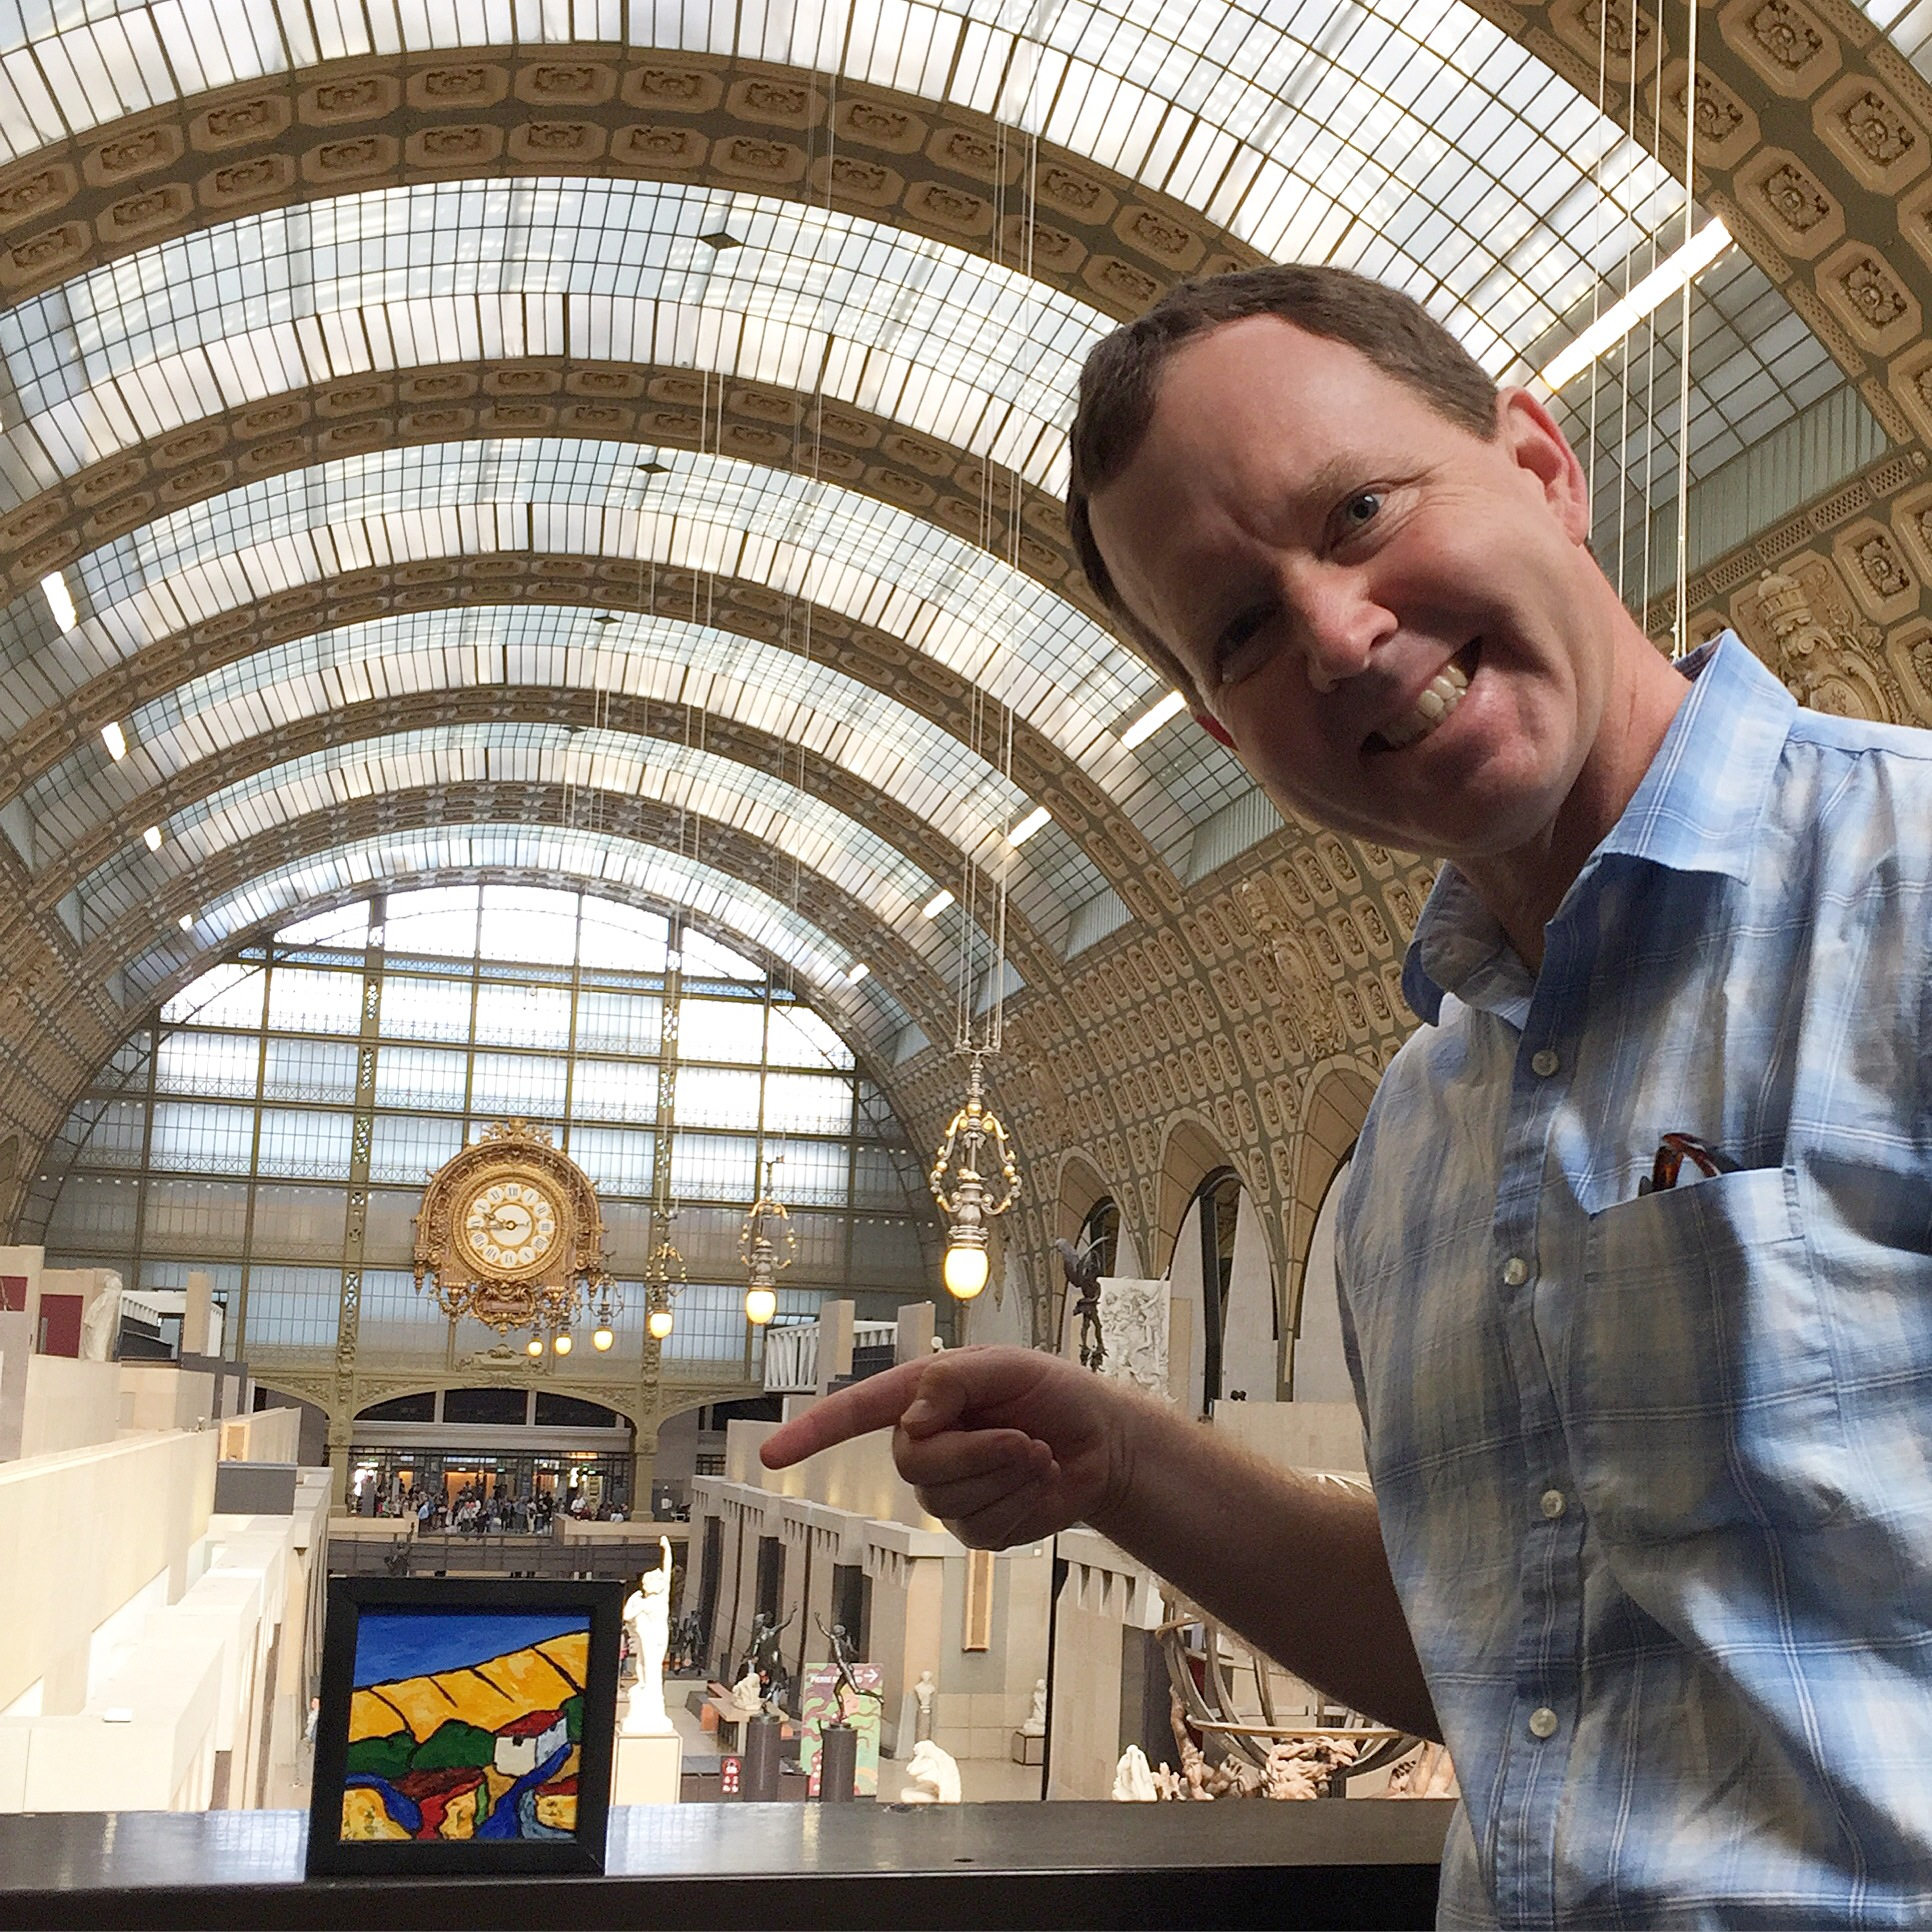 No fear - Eric snuck in and exhibited a small painting of his into the Musée d'Orsay in Paris.